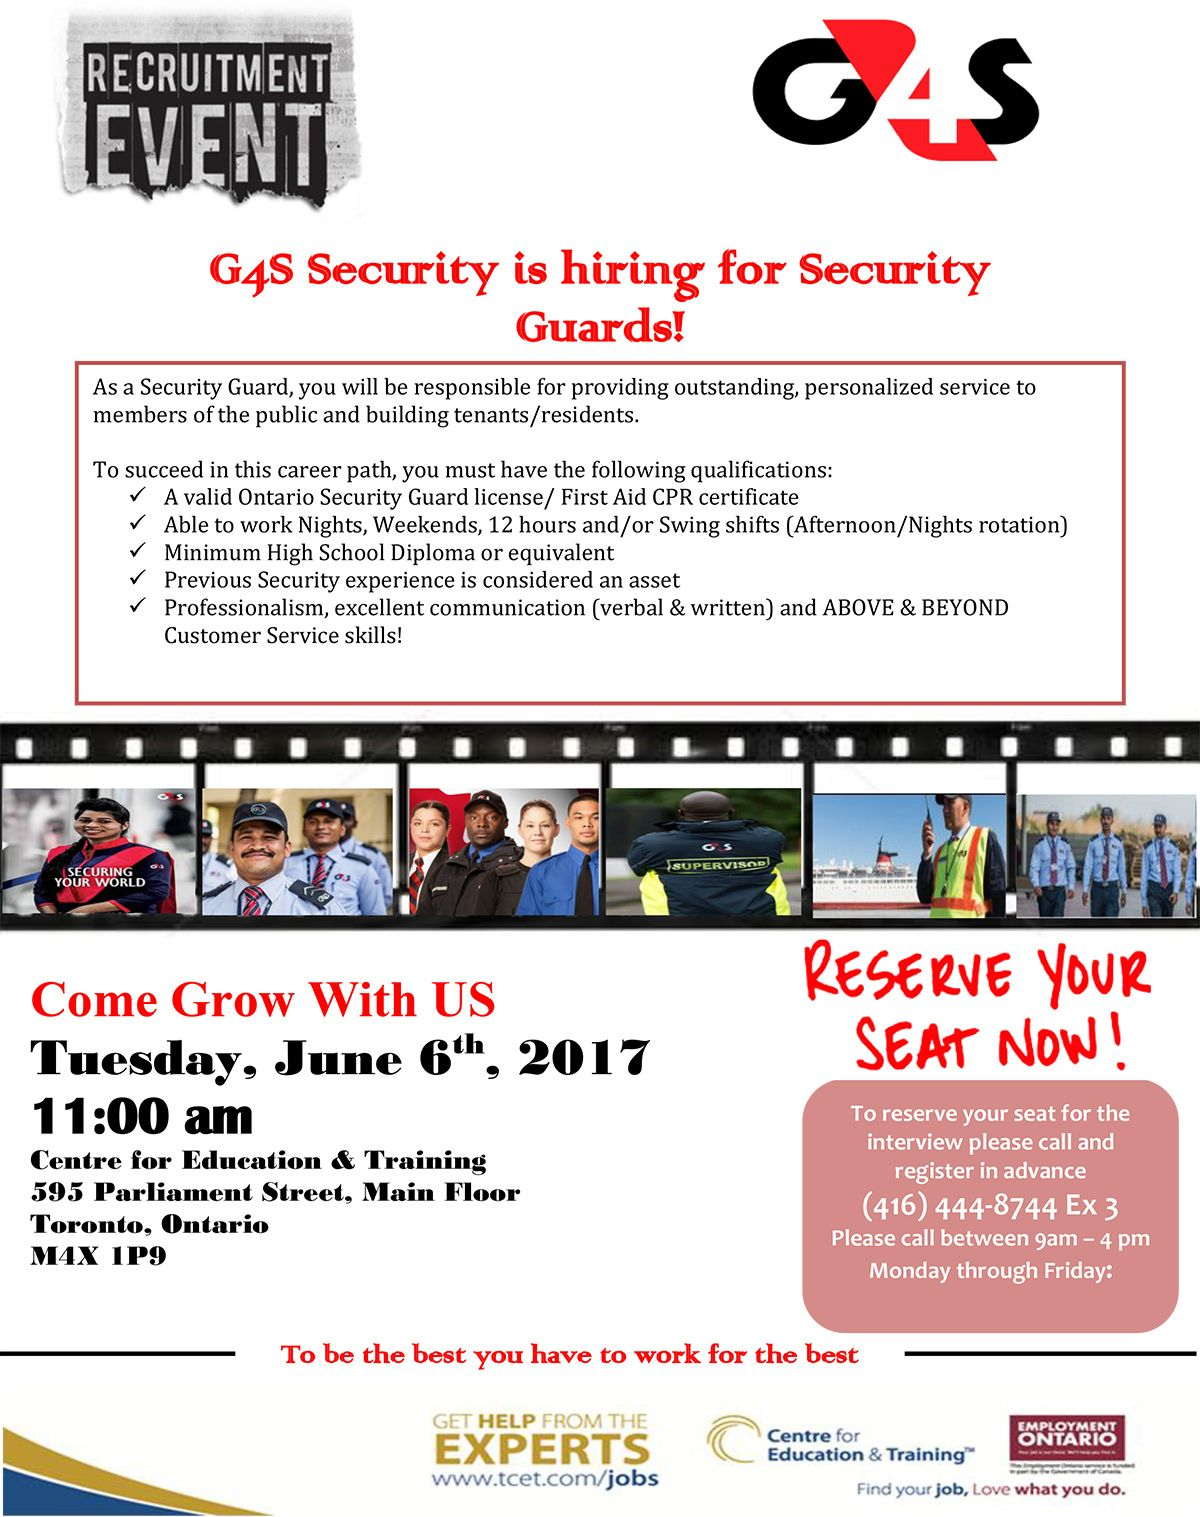 Thinking Of A Career In The Security Field Don T Miss The G4s Security Hiring Event Tomorrow Tuesday June 6 2017 Education And Training Youth Programs Career